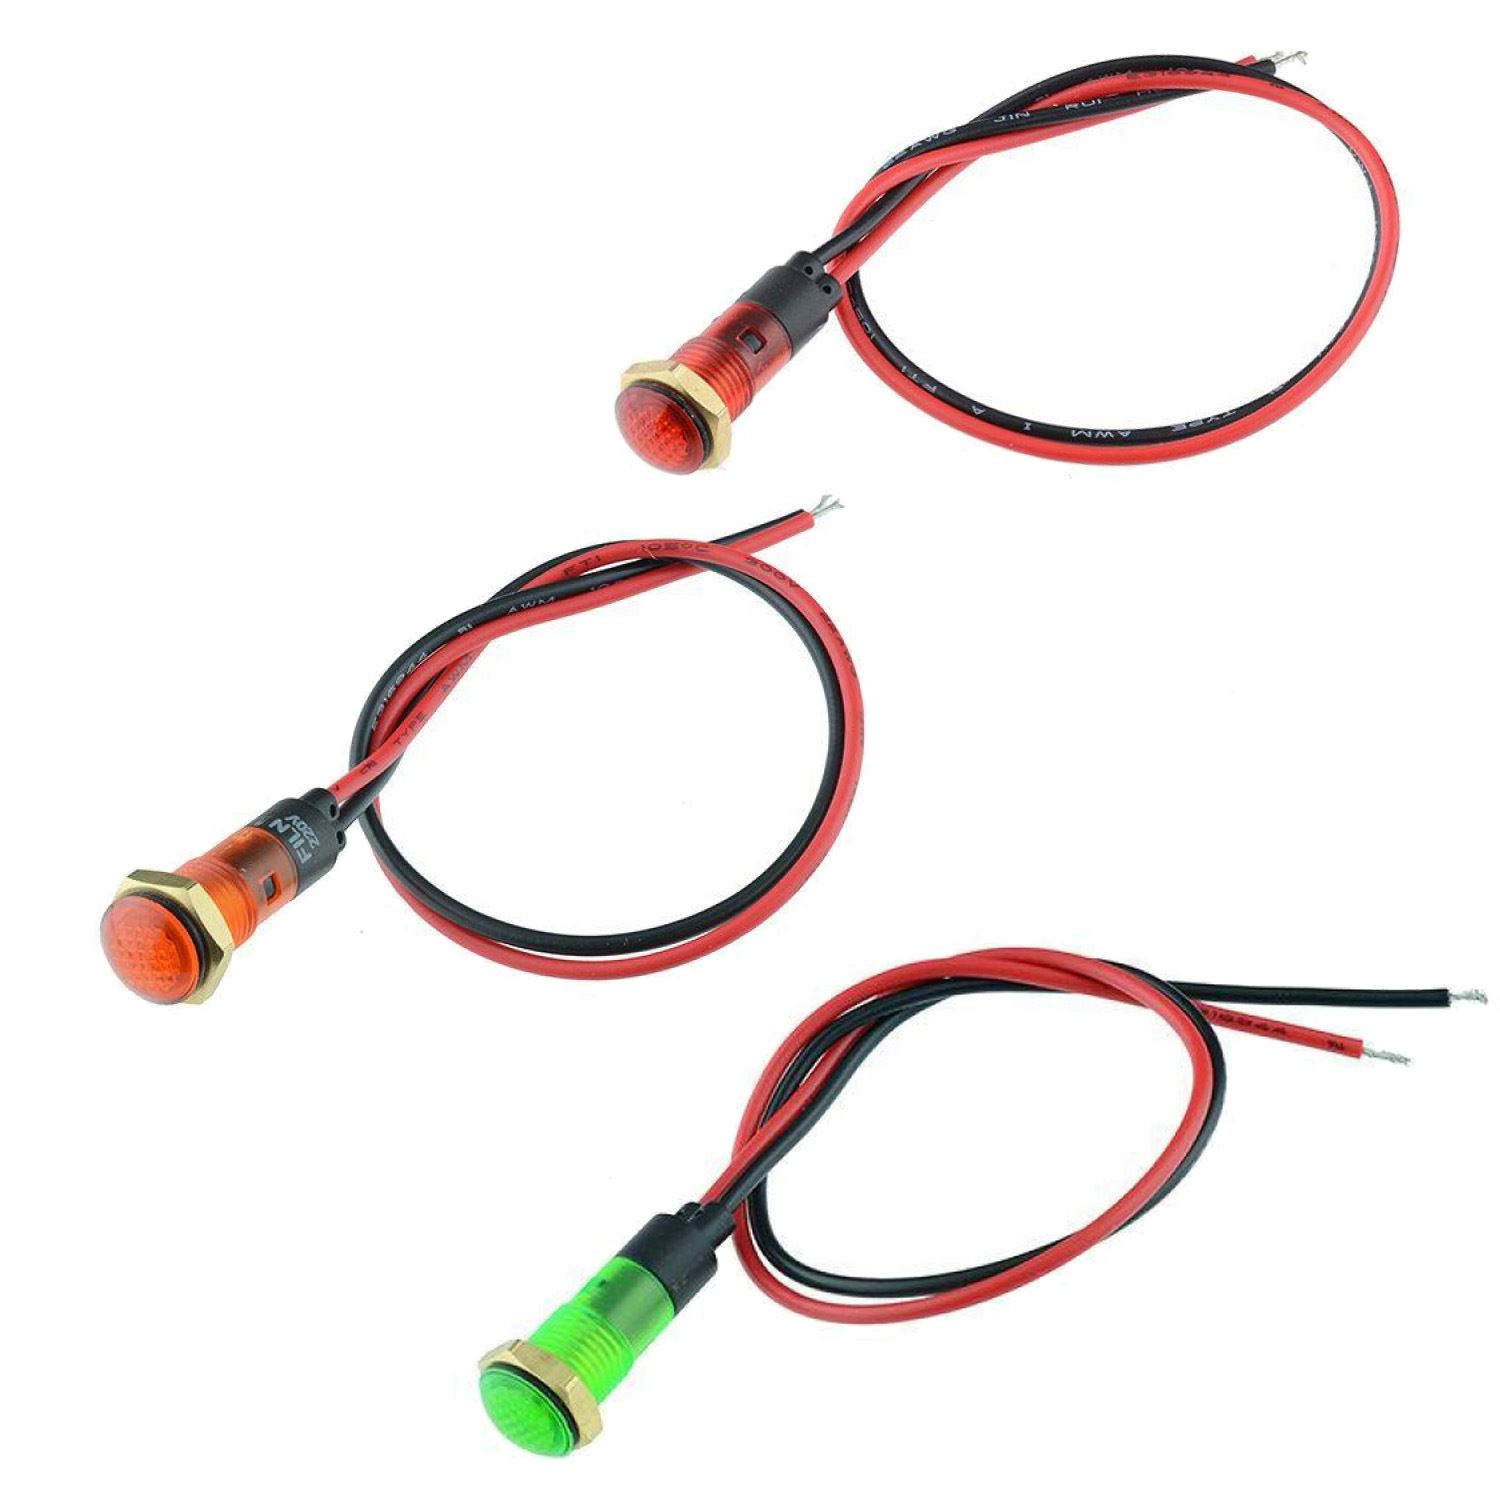 5 x Yellow LED Prewired 8mm Panel Indicator 220V